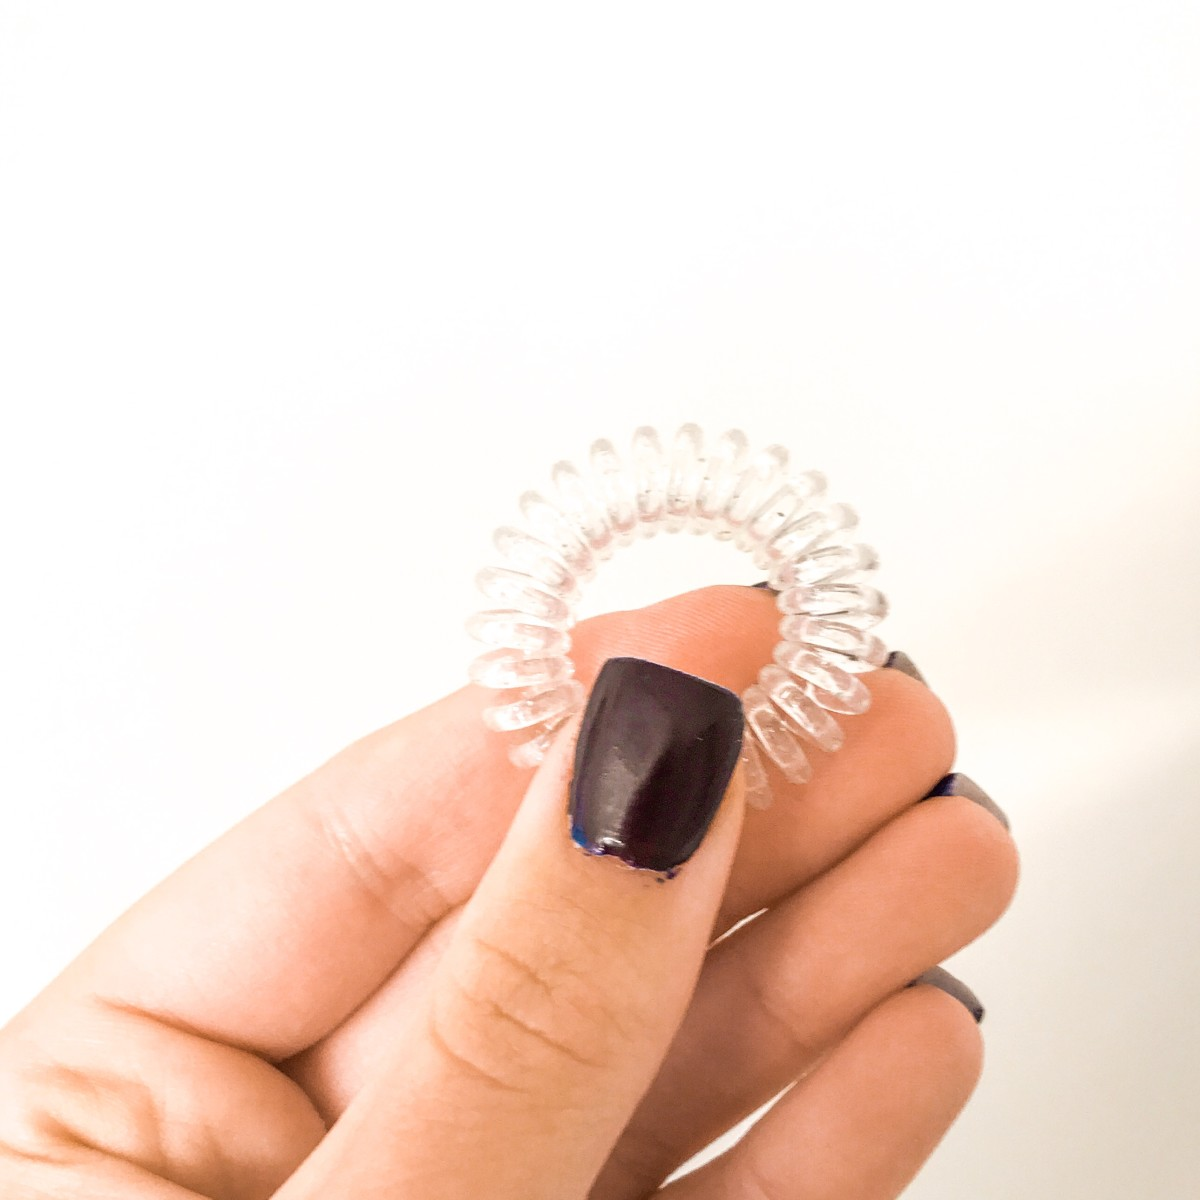 This is an Invisibobble hair tie. It will keep your hair from creasing.